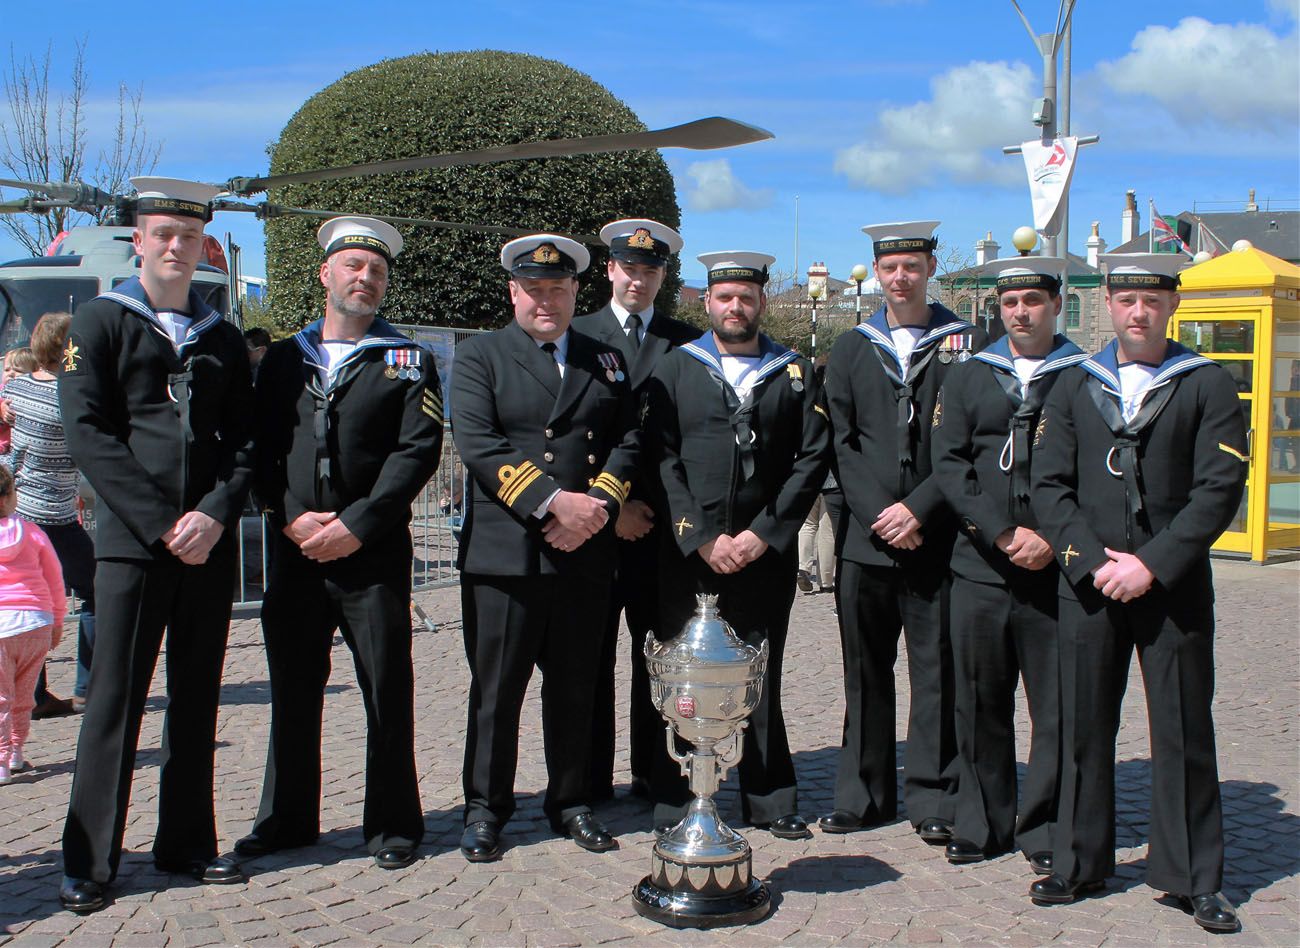 HMS Severn supports the Jersey Boat Show.